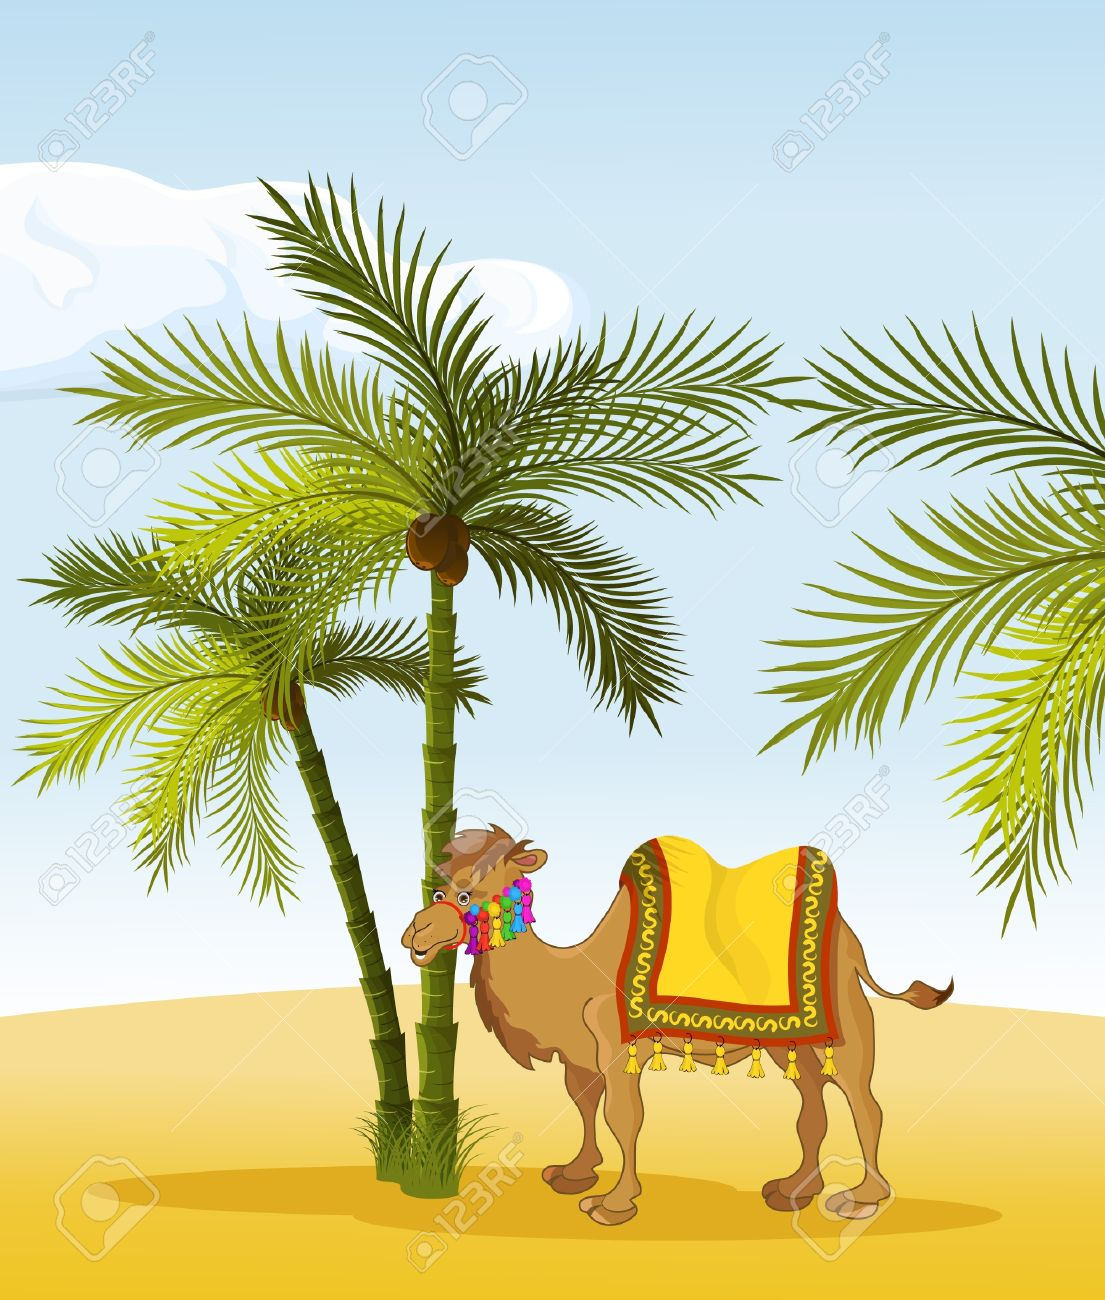 Desert with palm tree clipart.